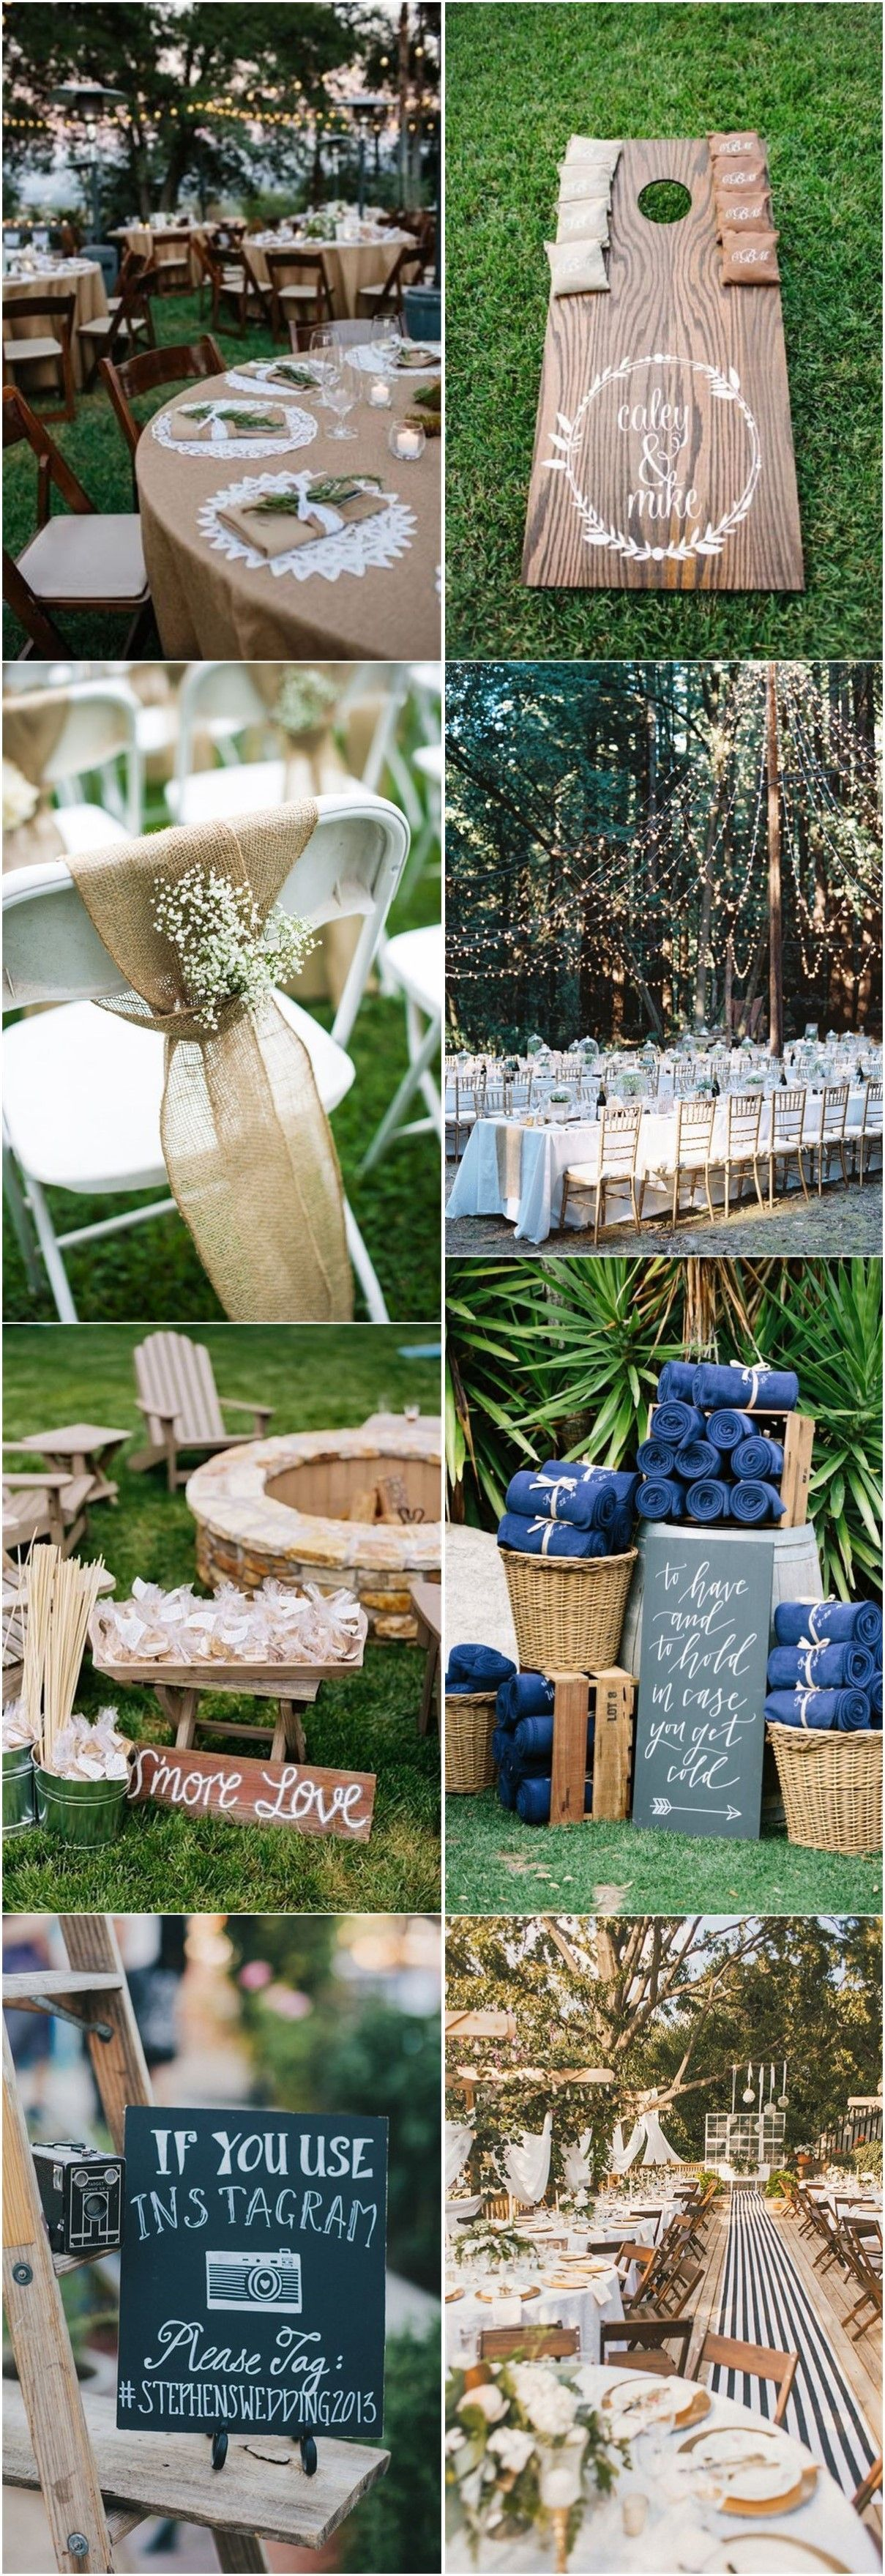 Ideas for wedding decorations outside   Rustic Backyard Wedding Decoration Ideas on A Budget in